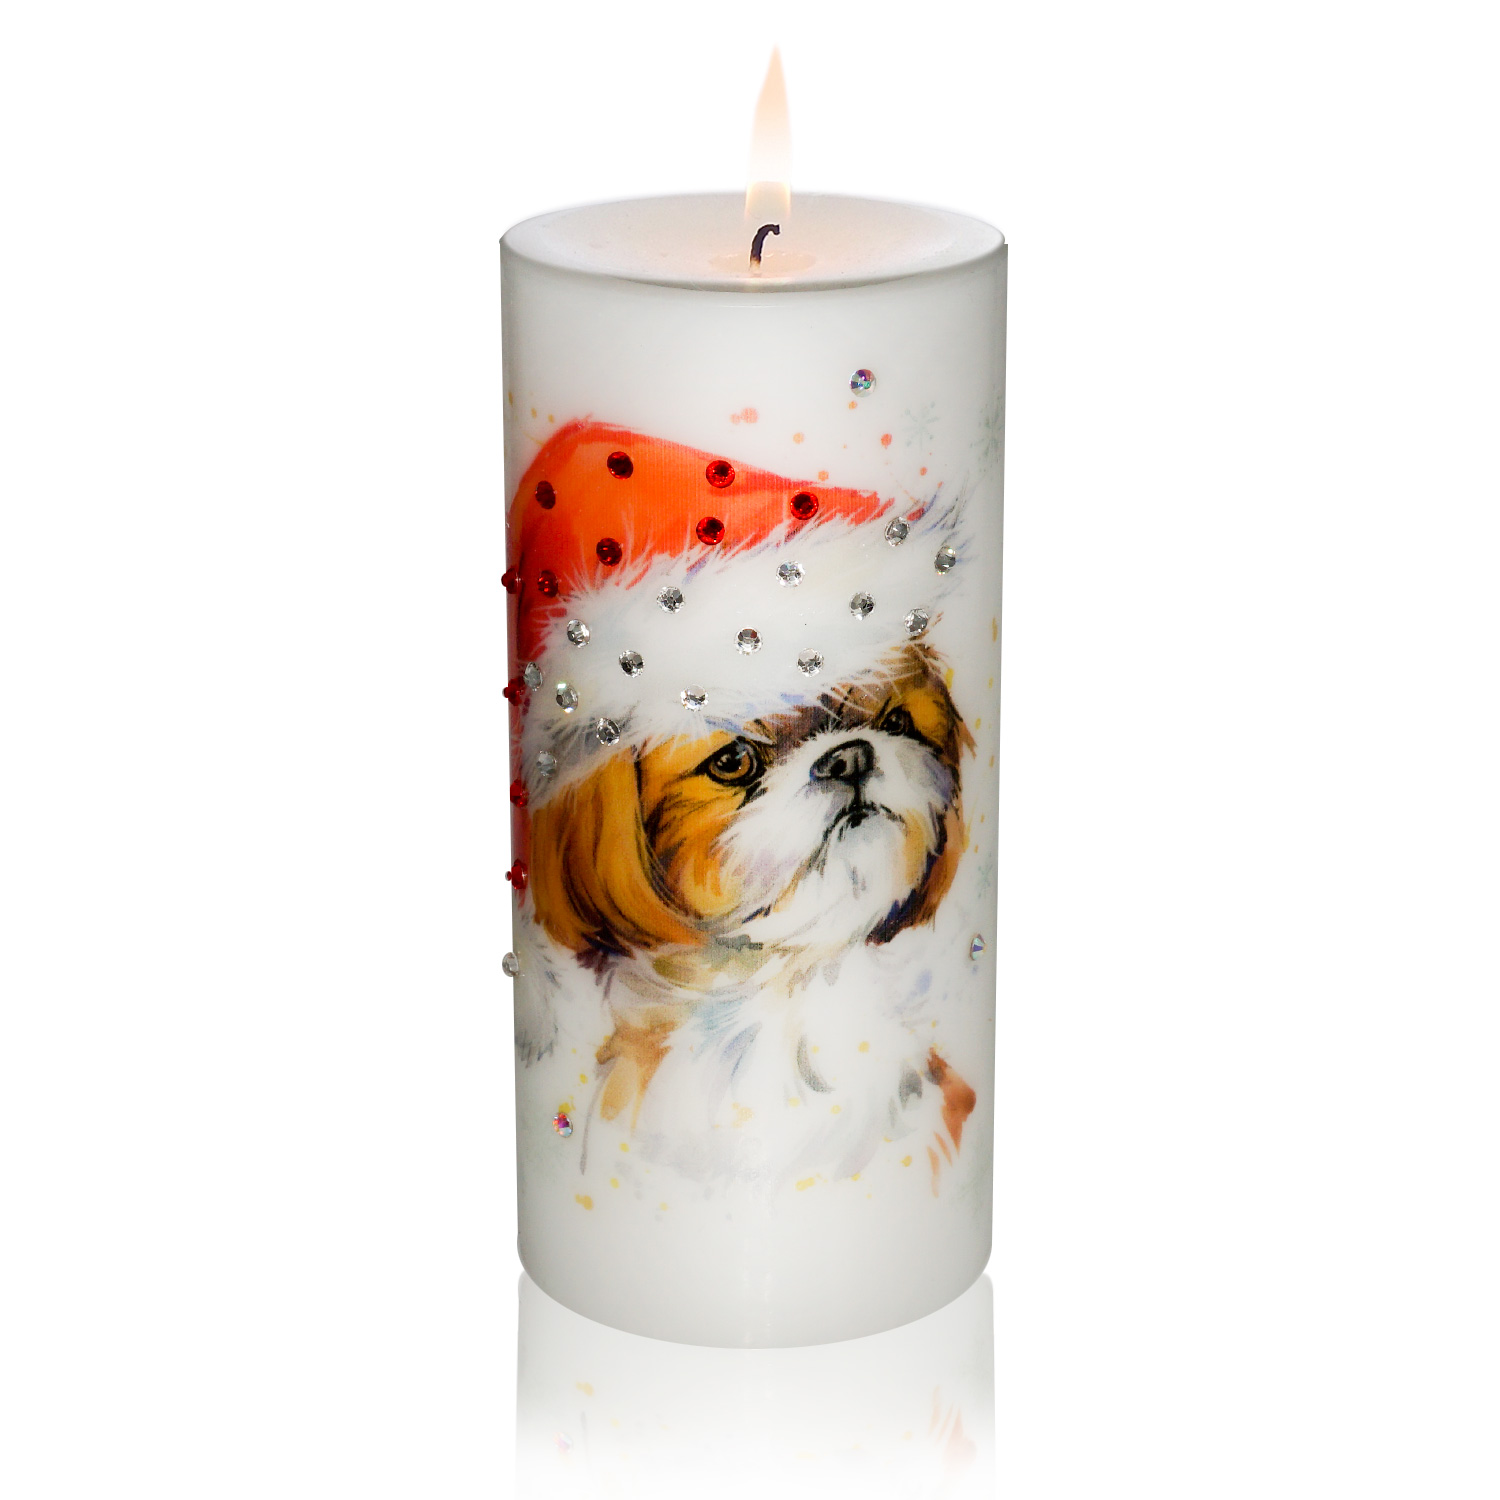 Luxury New Year of the Dog Pillar Candle - Shih Tzu in a Hat Gift ...